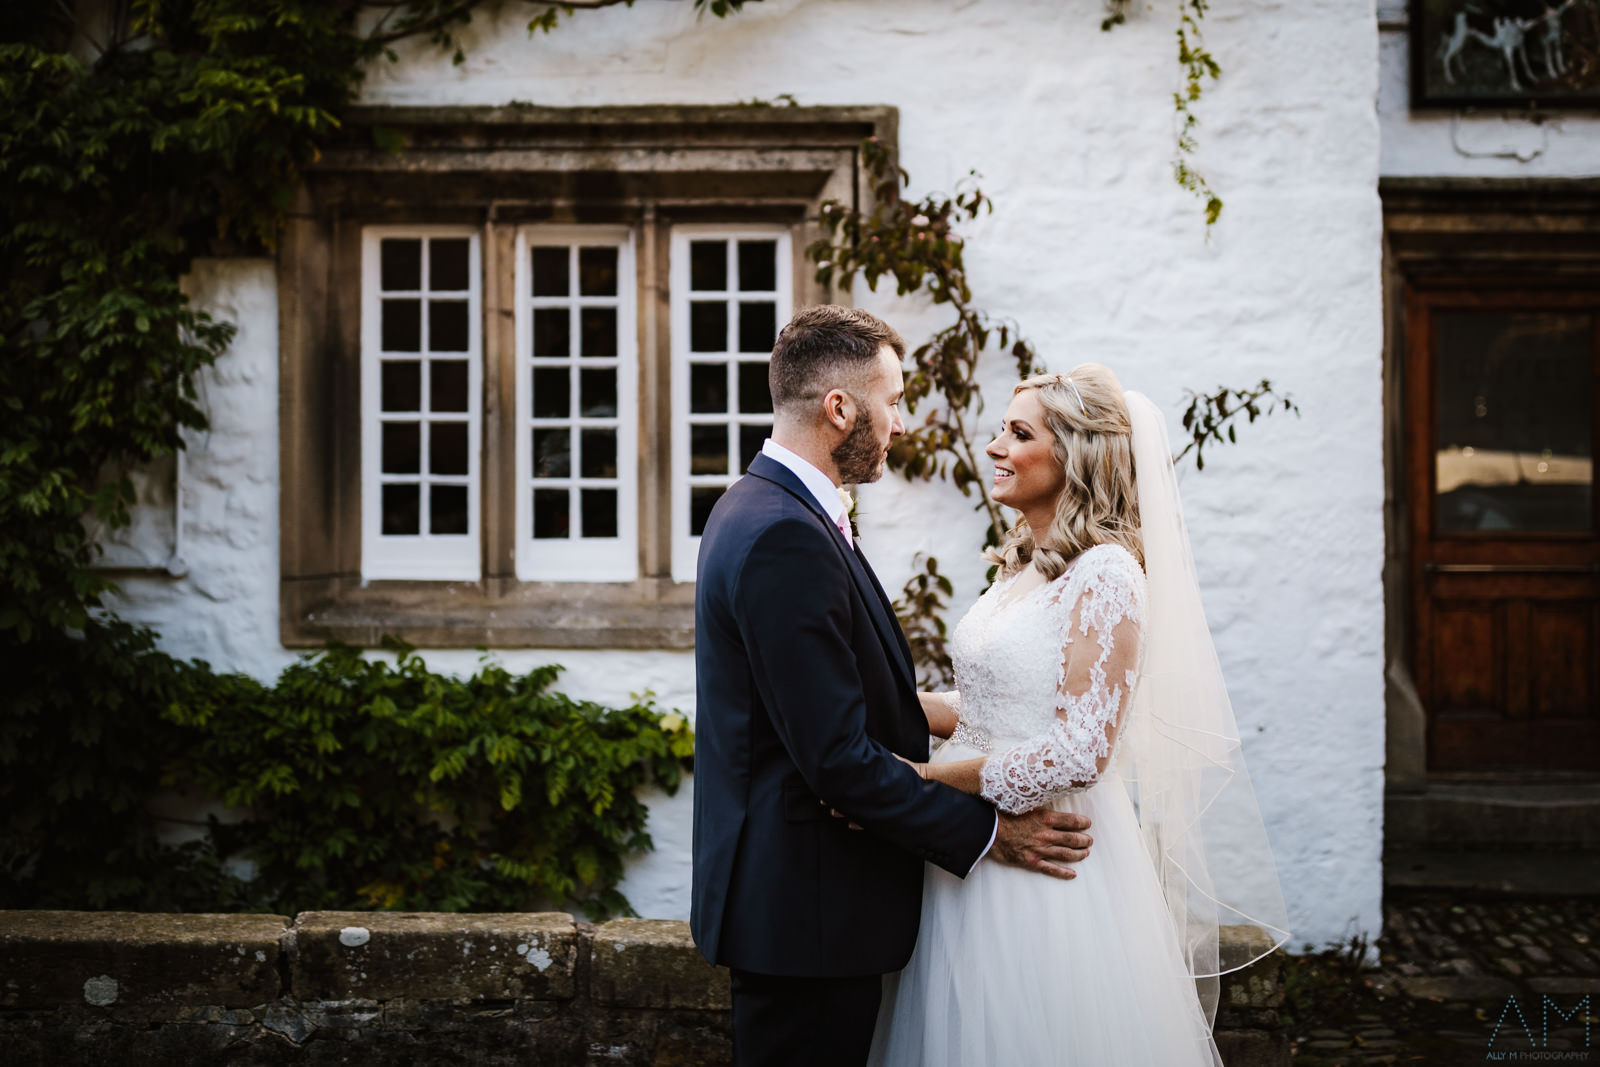 The Inn at Whitewell bride and groom